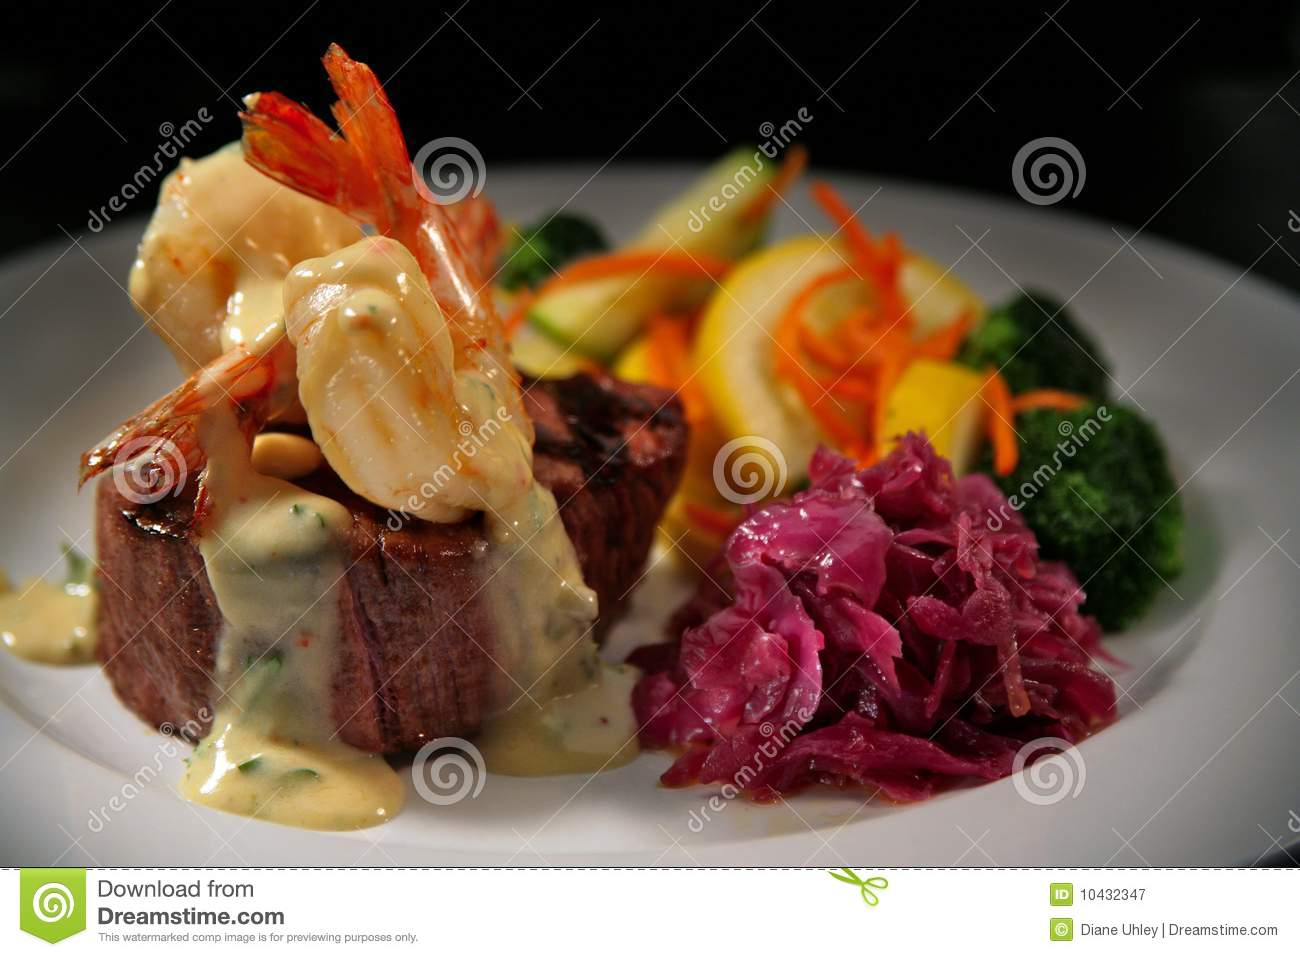 Beef Filet Mignon With Shrimp And Veggies Royalty Free